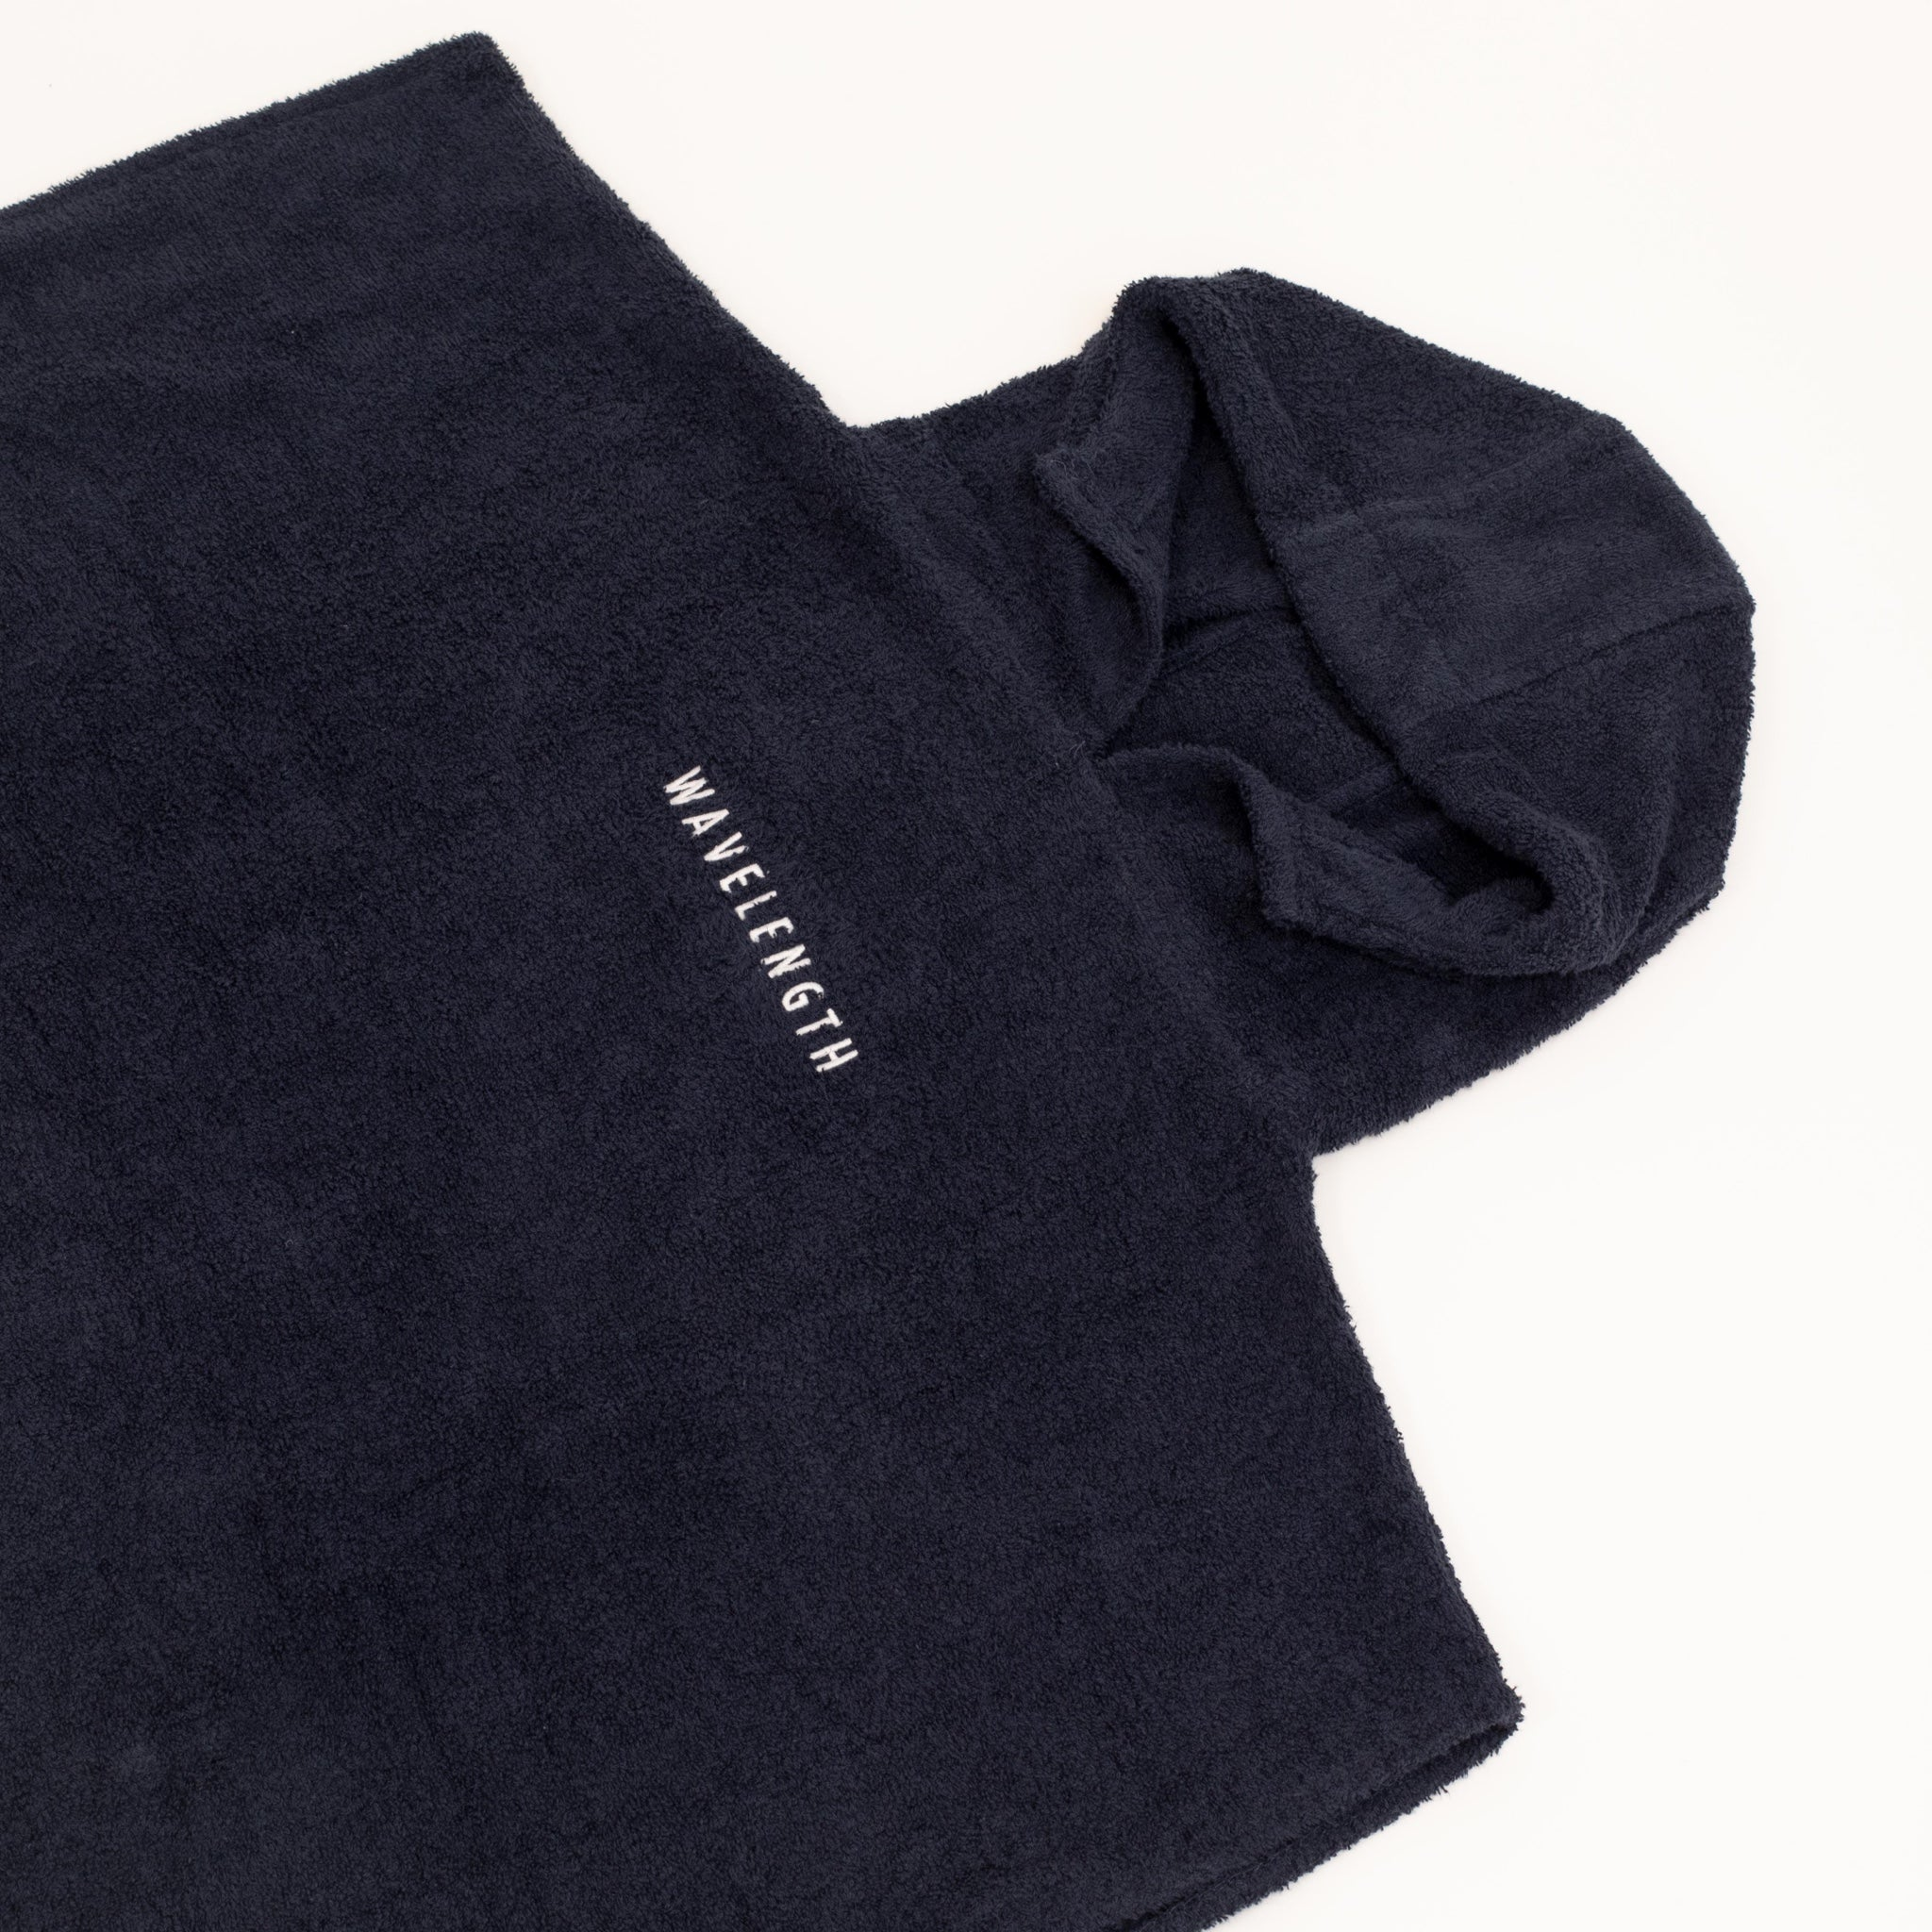 Wavelength Embroidered Change Towel - Navy